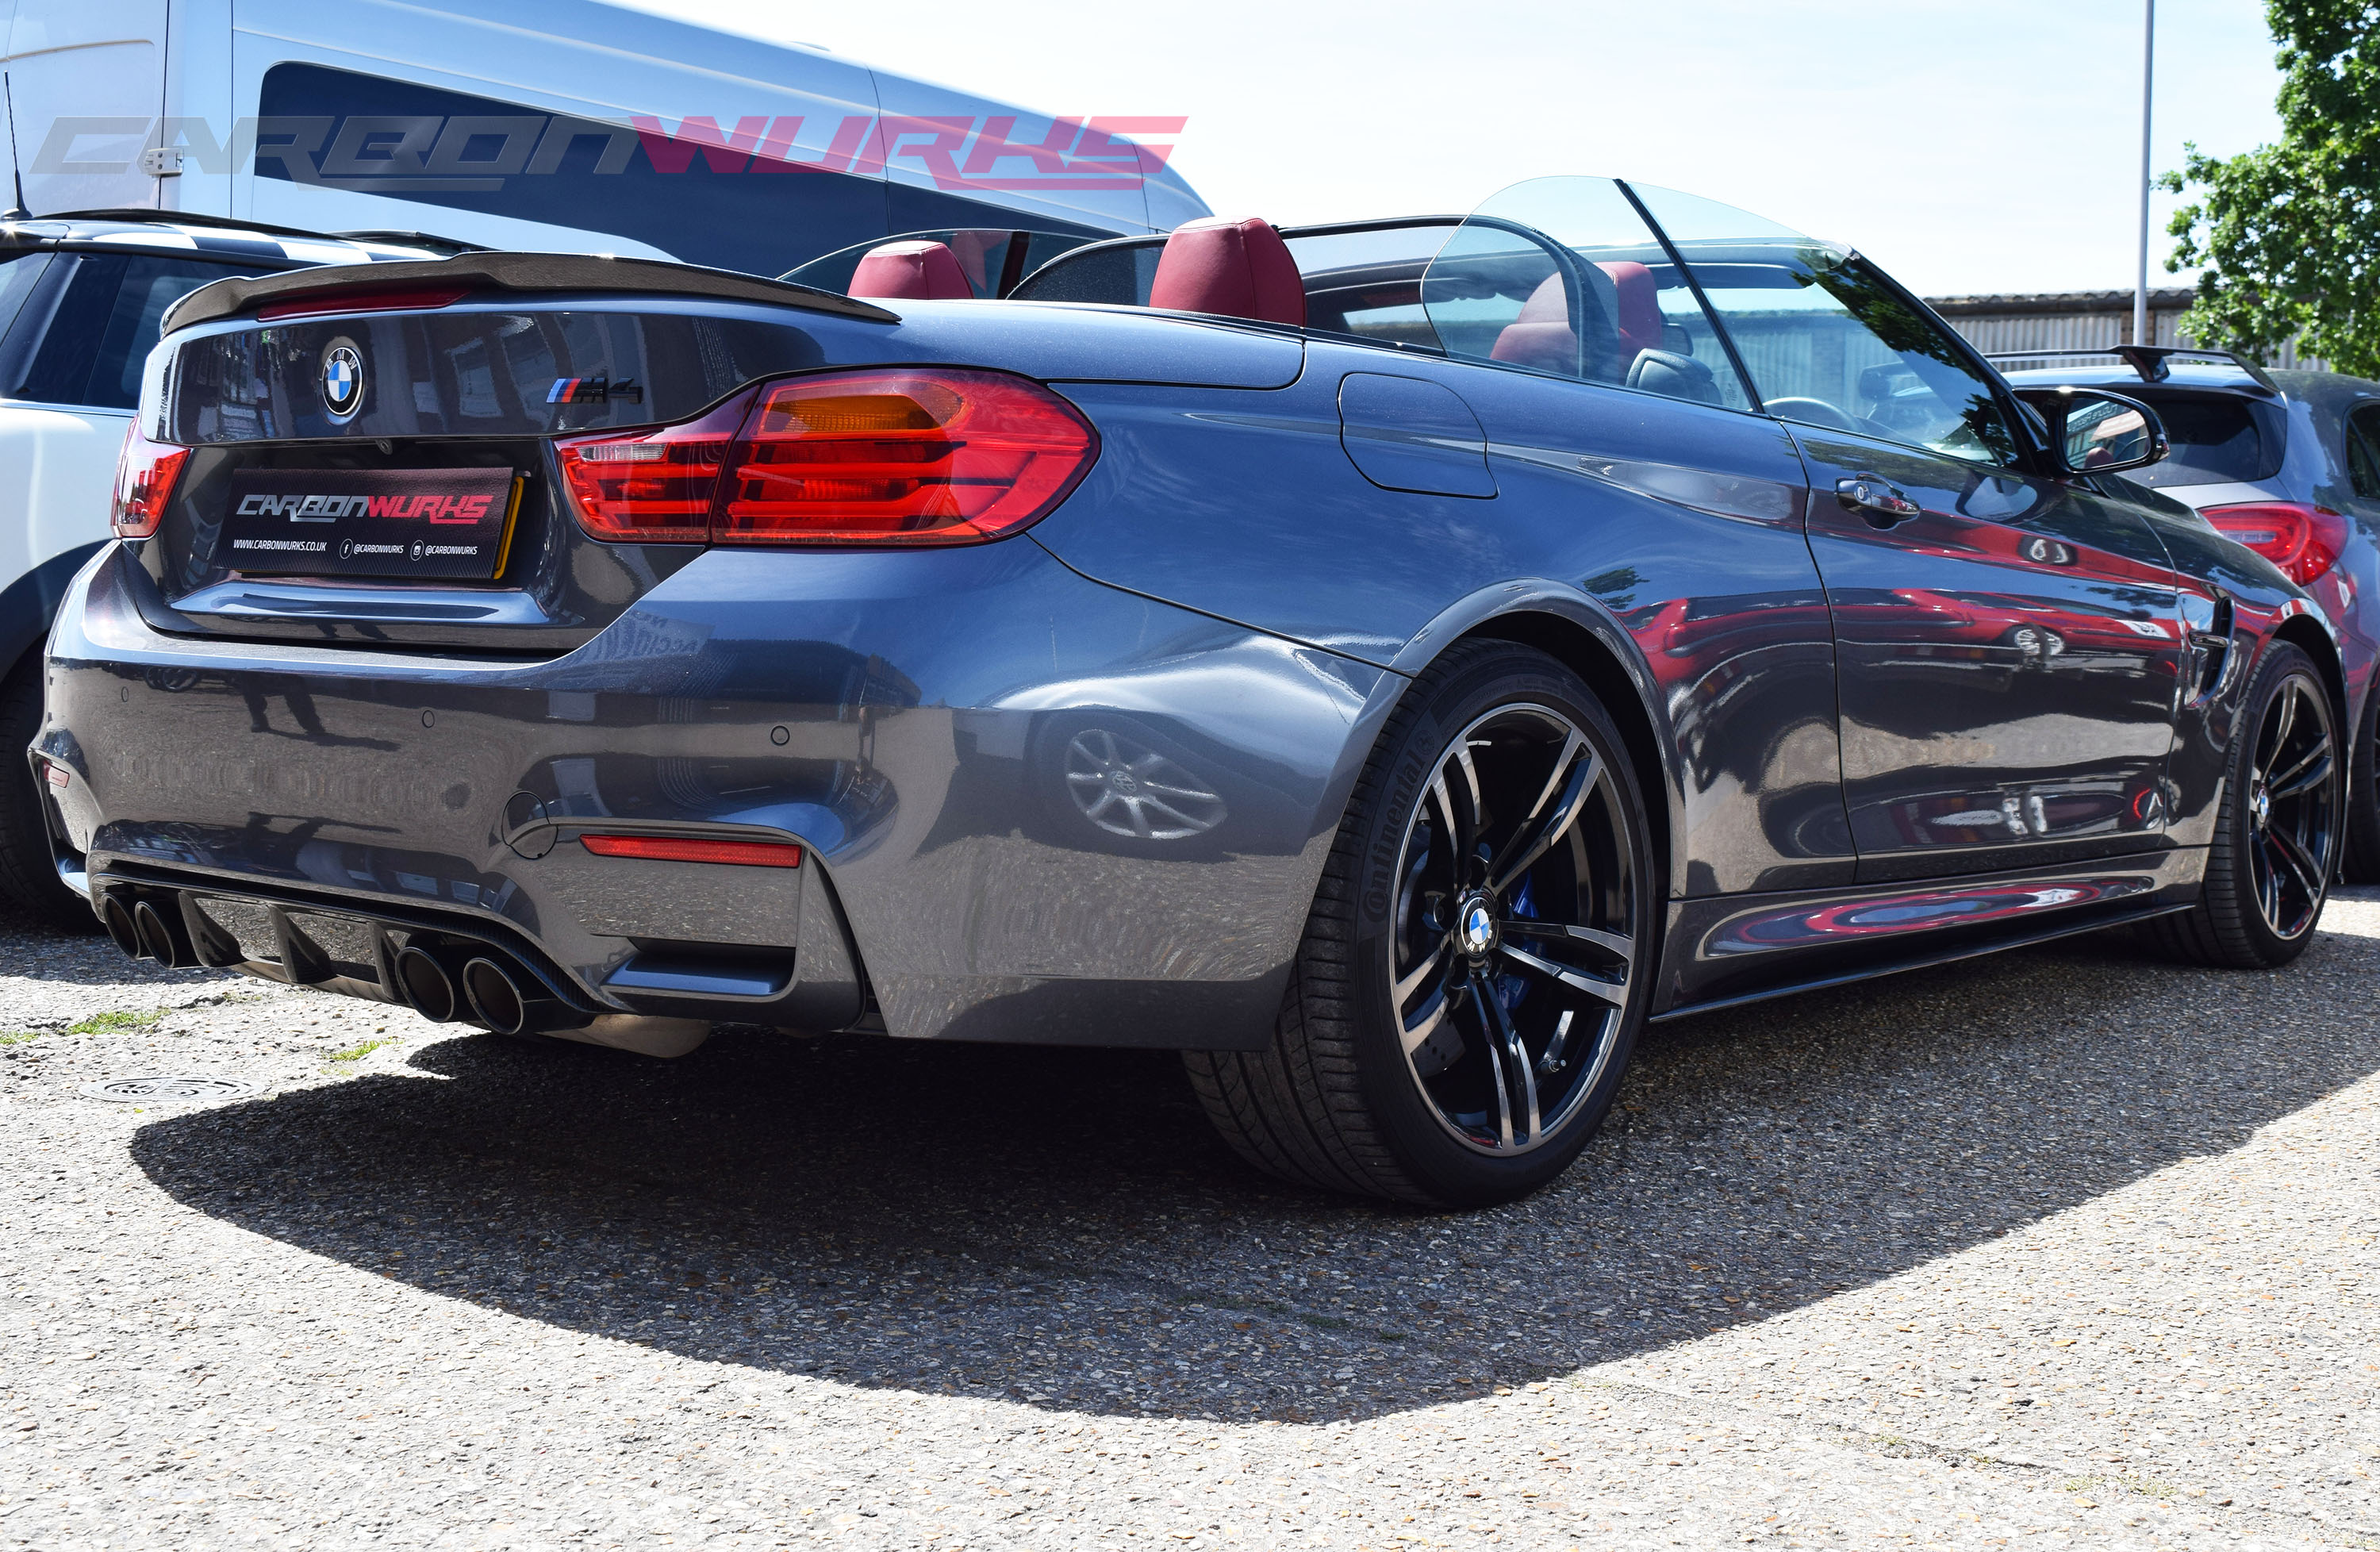 BMW M4 4 Series Convertible Carbon Fibre Rear Spoiler